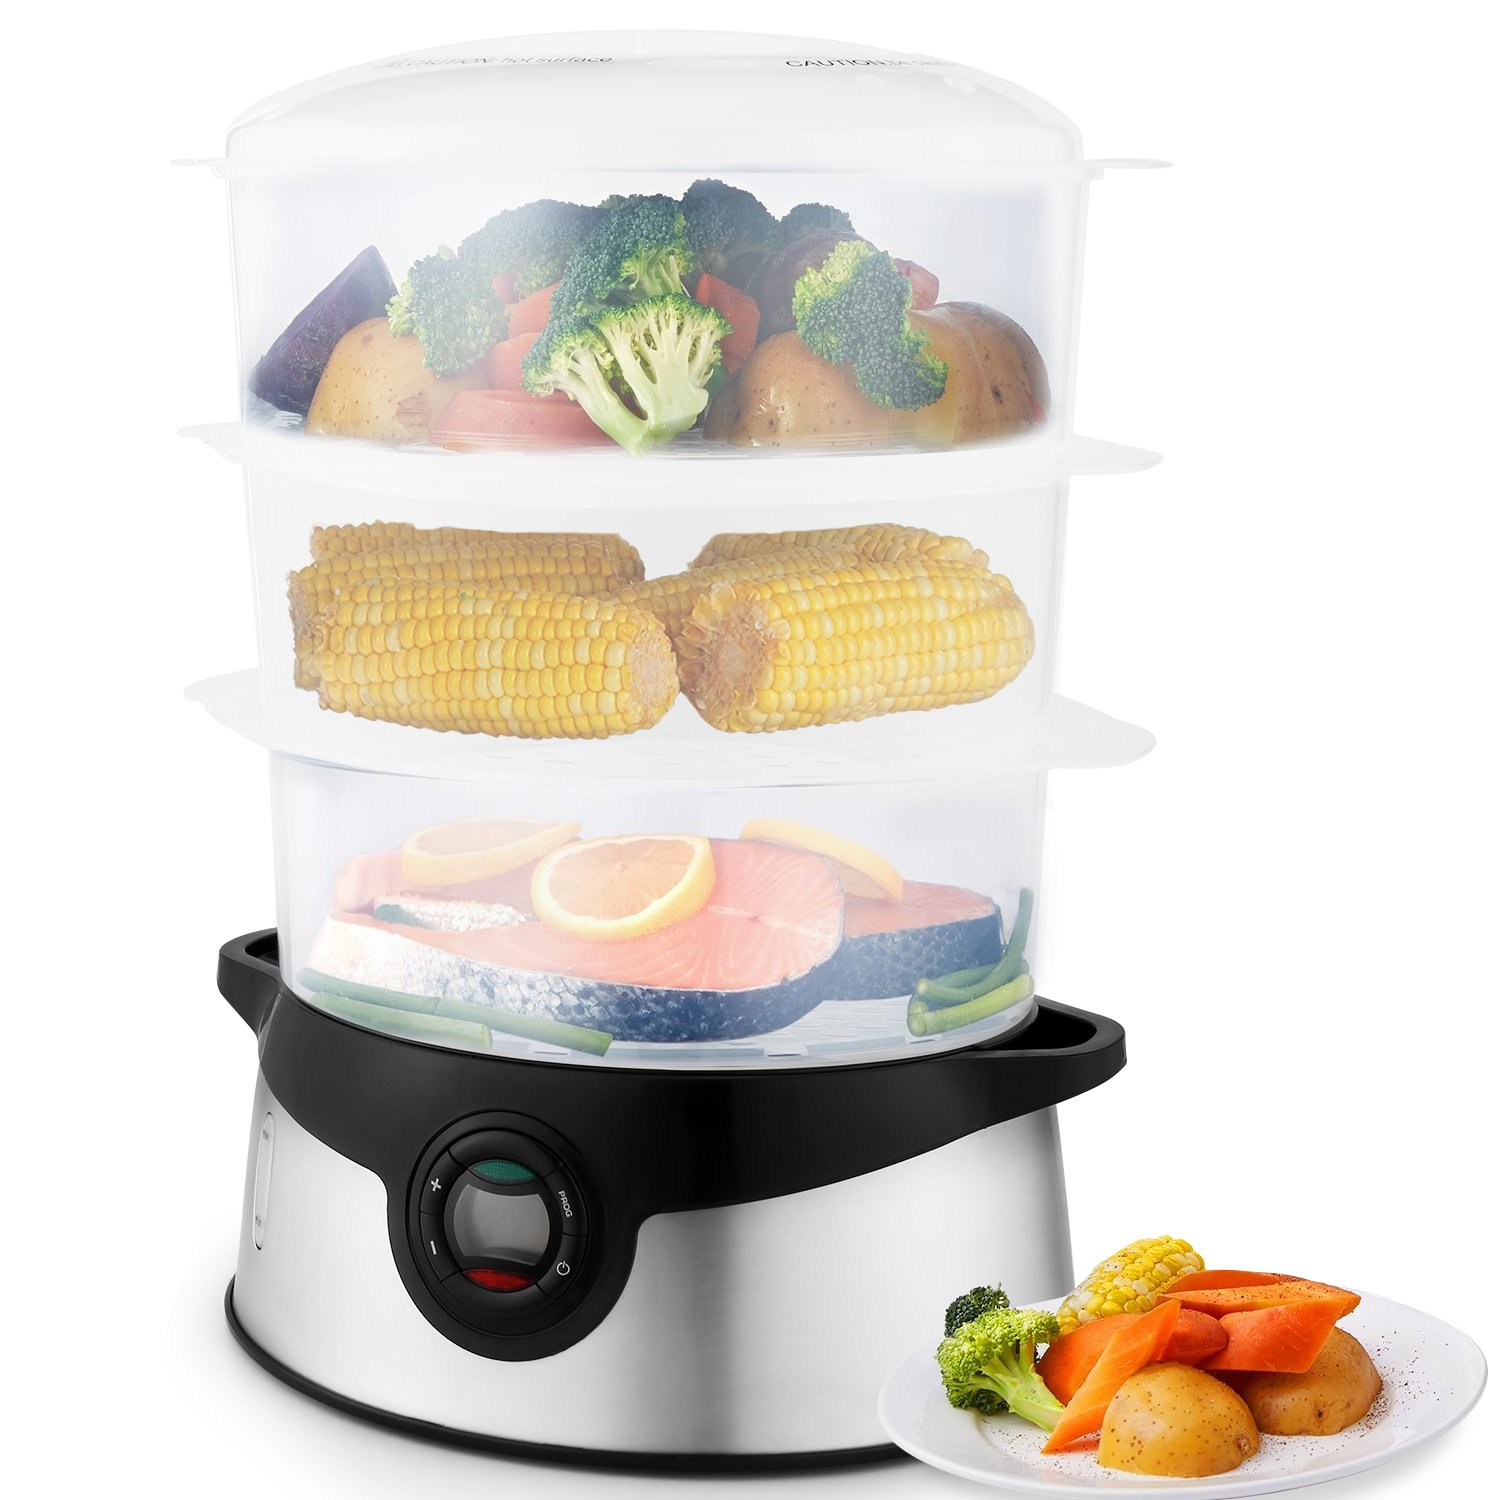 Three Tiers Electric Food Steamer Steam Cooker Vegetable Steamer BPA Free,Low-Fat Dishes Home Kitchen Favor, Healthy Stainless Steel (Clear Gray)